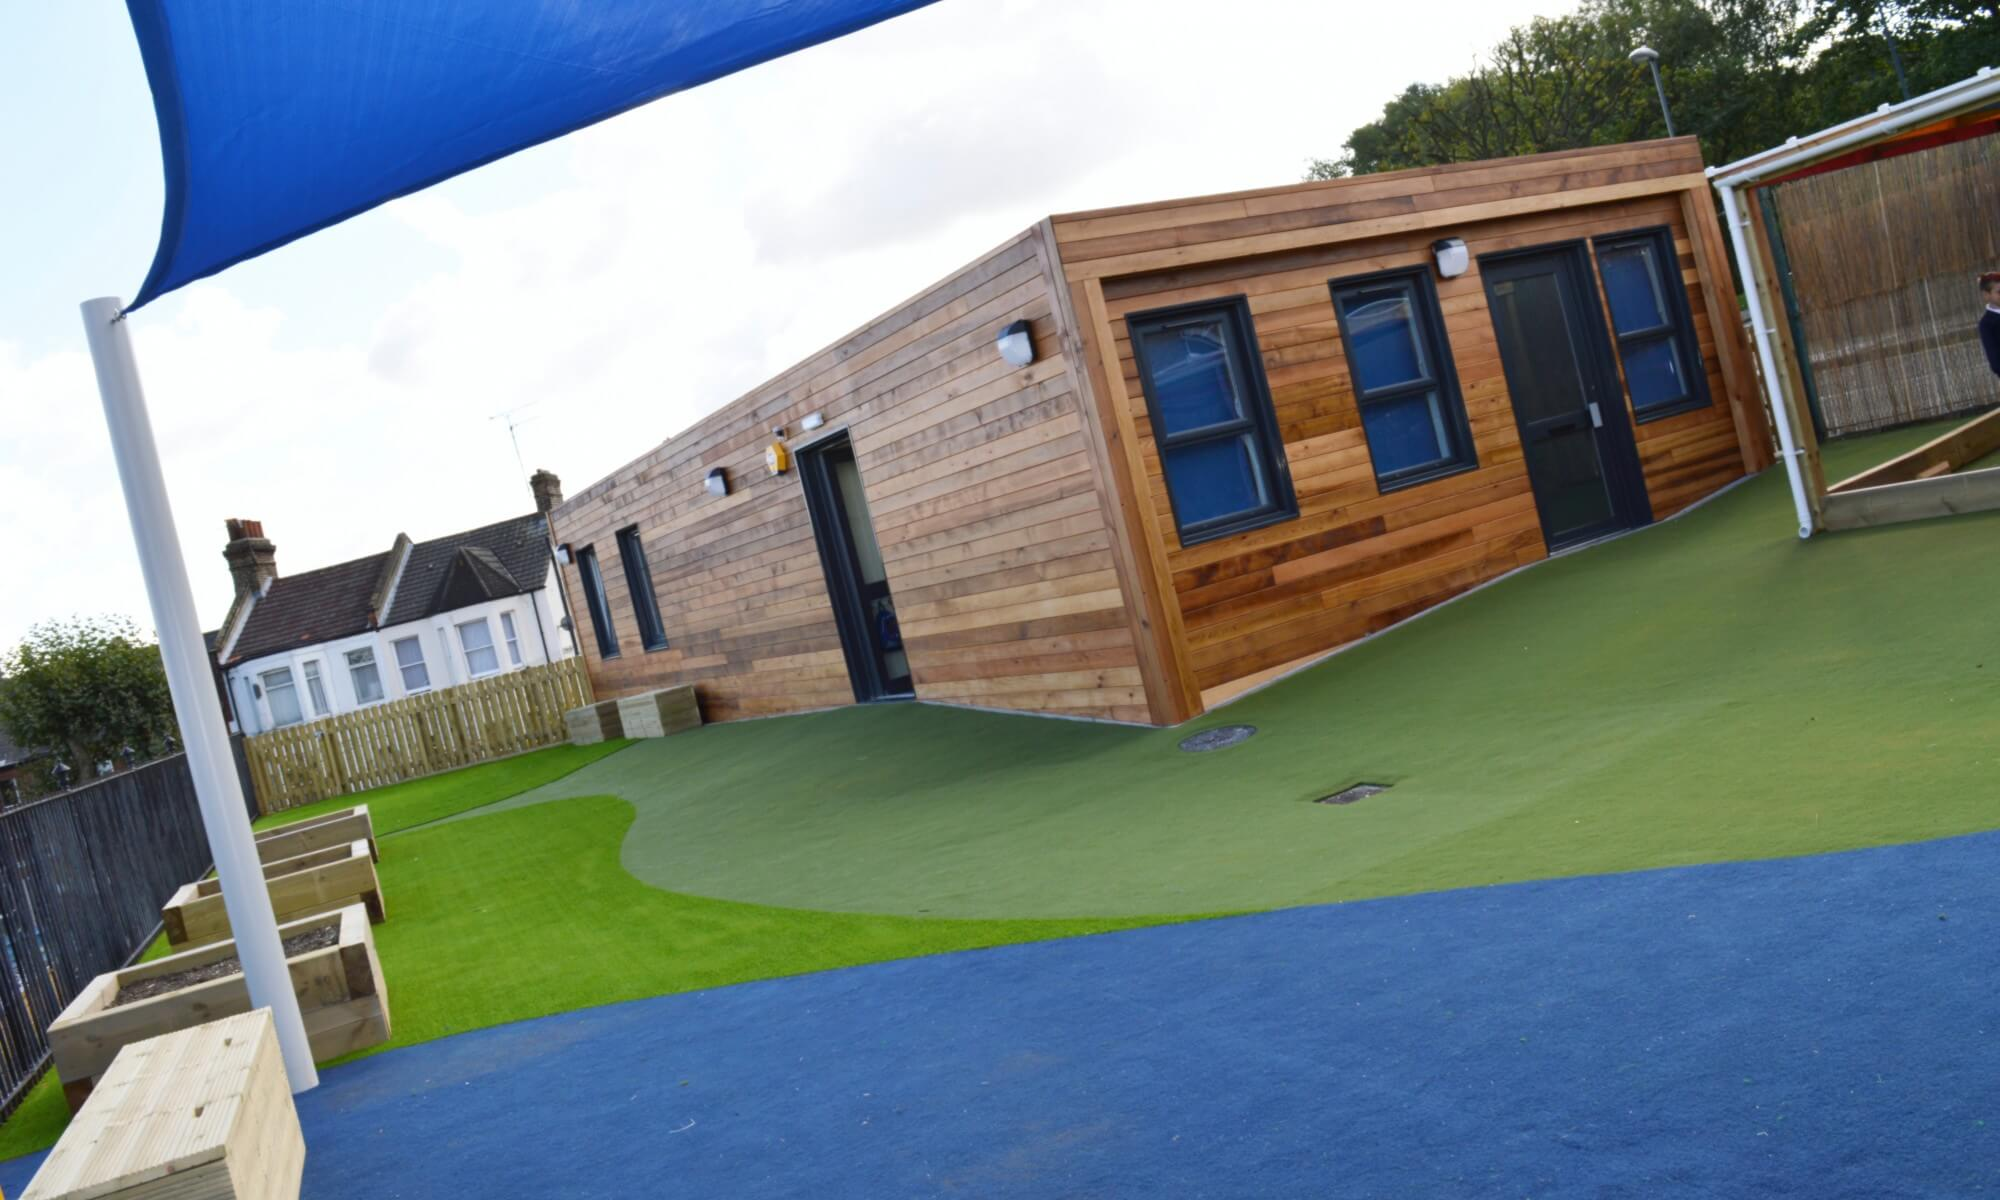 School Playground design & installation at Plumcroft Primary School in Plumstead, London | Playcubed Playgrounds